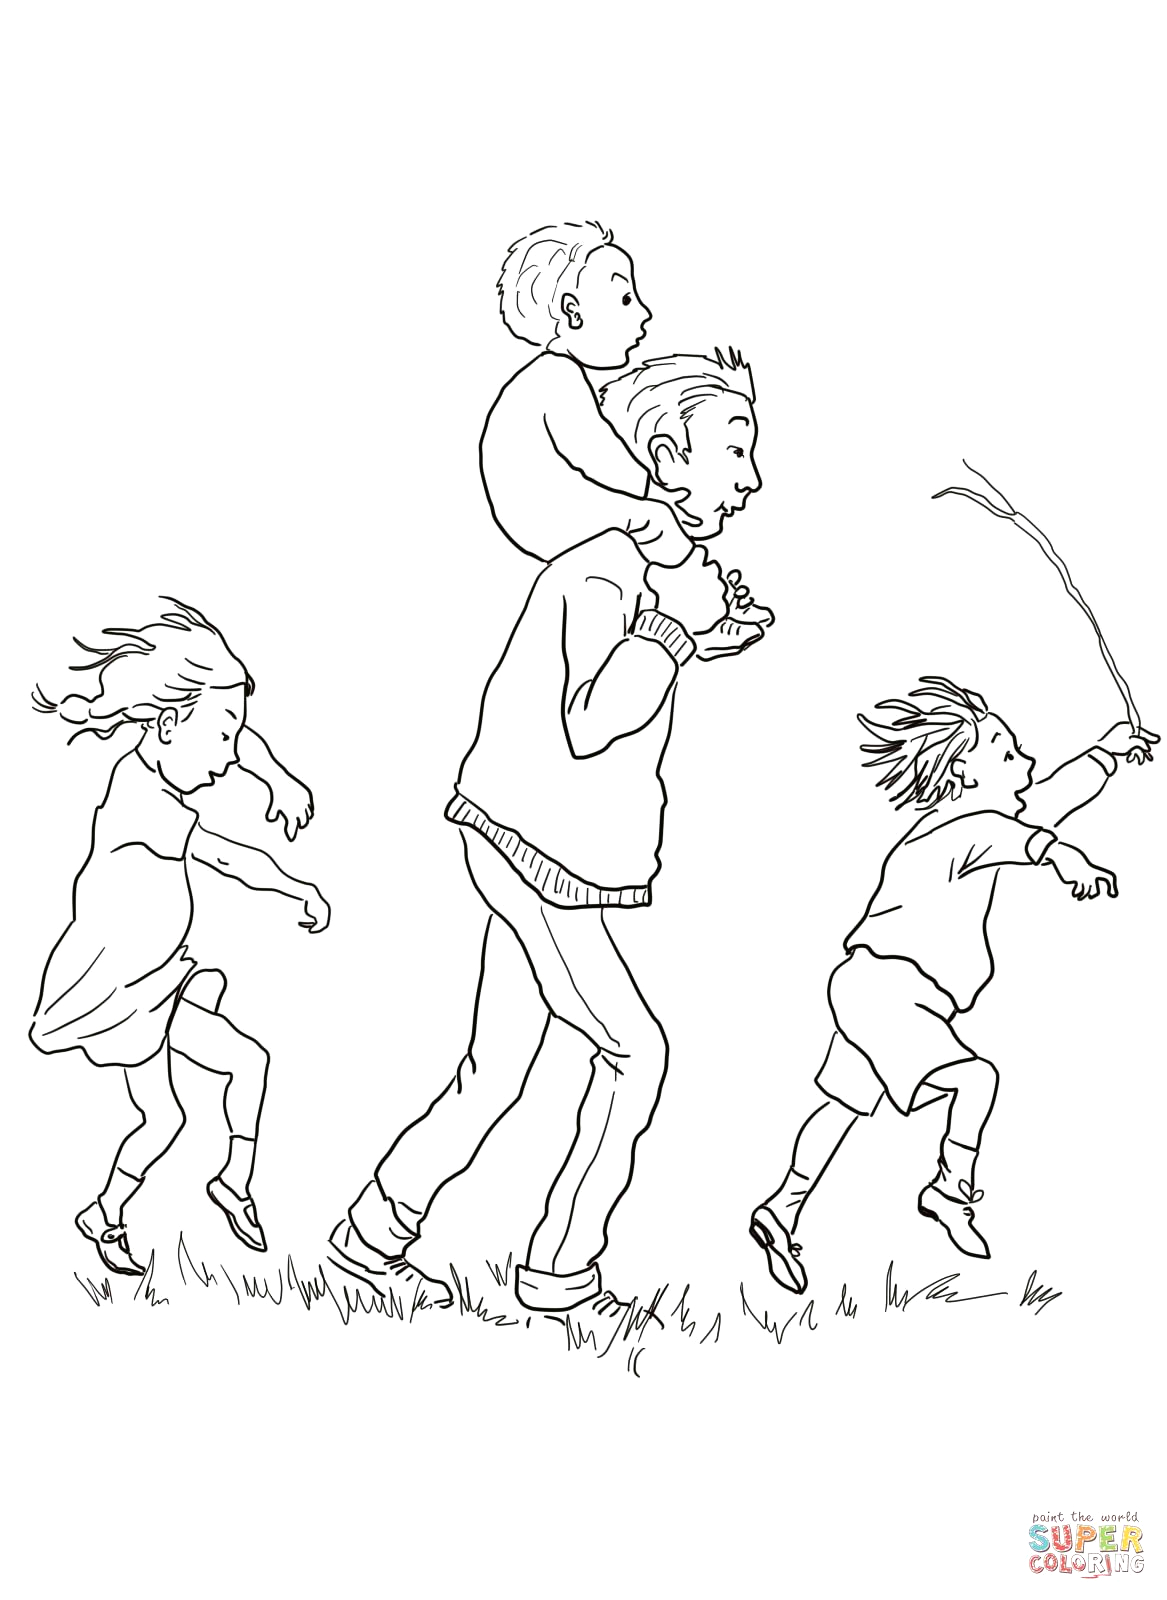 We Re Going On A Bear Hunt Printable Coloring Pages We Re Going On A Bear Hunt Coloring Page